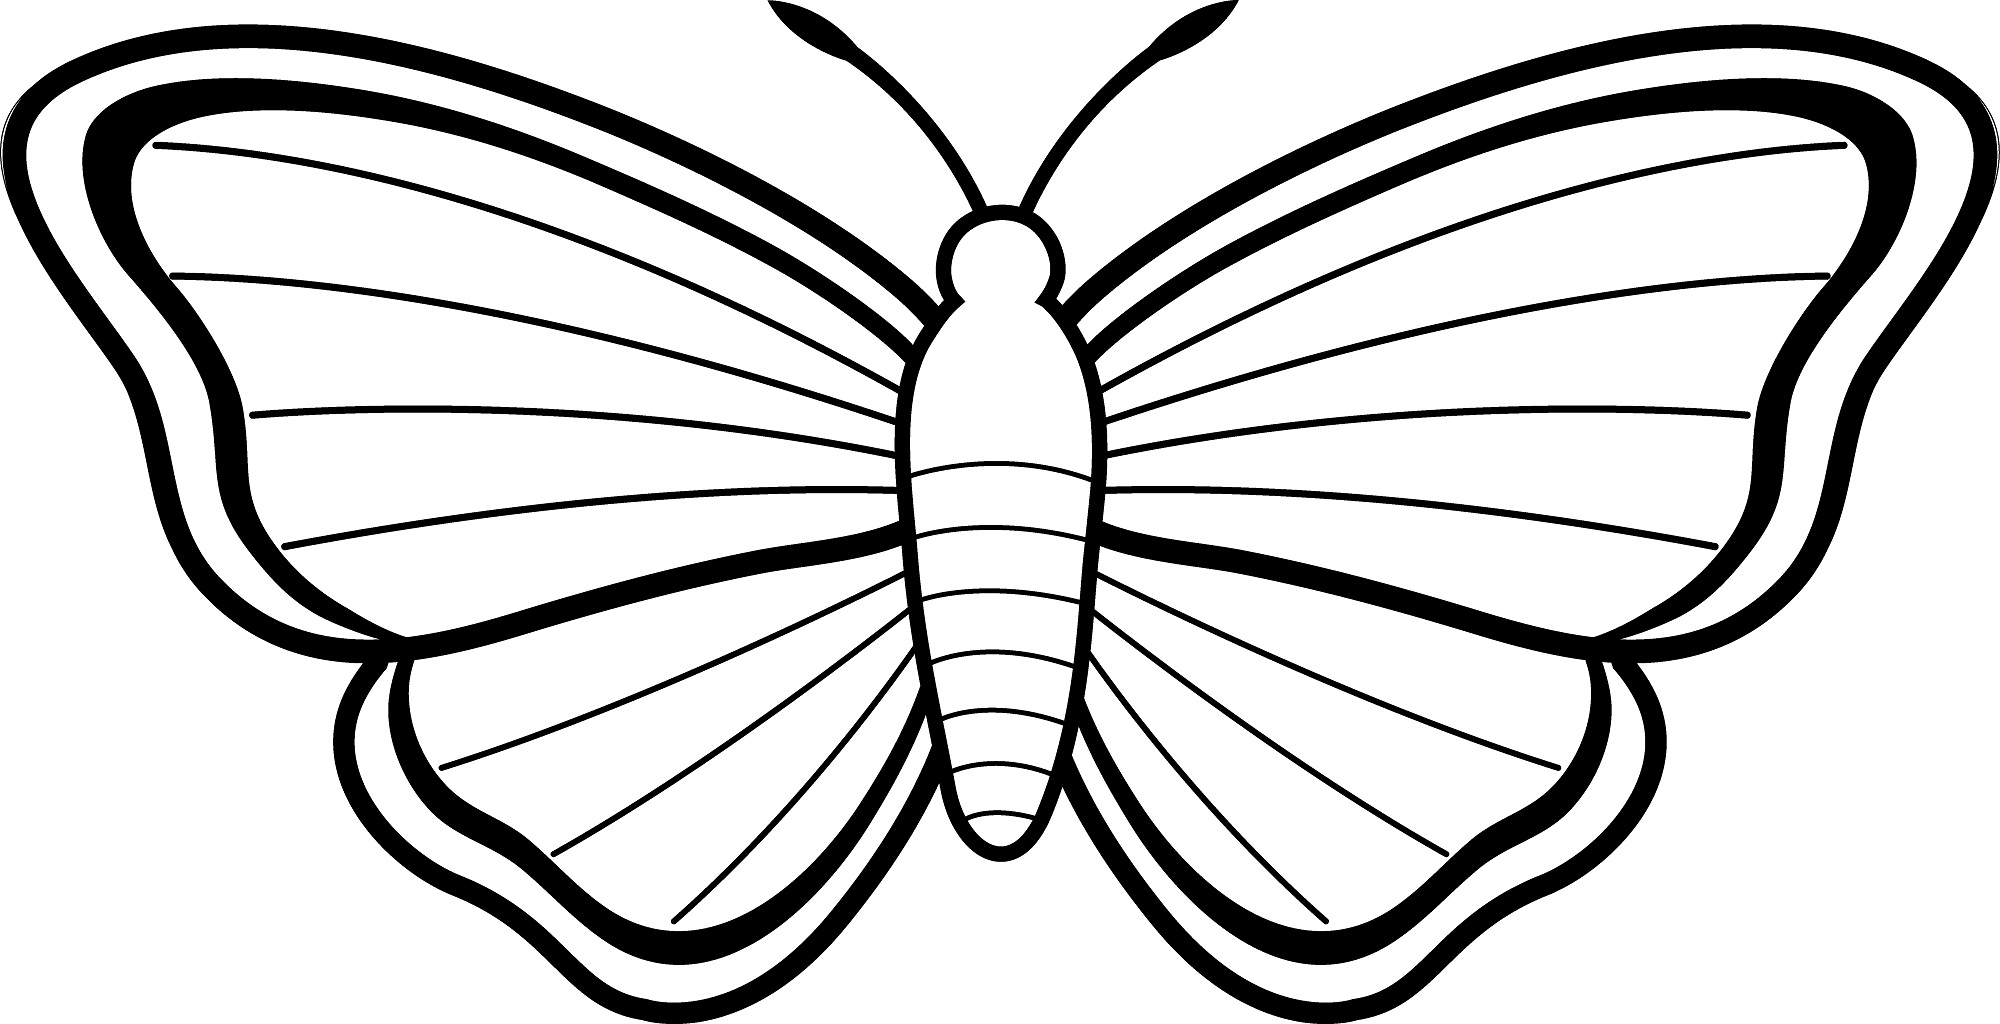 butterfly coloring sheet printable coloring pages butterfly free printable coloring pages sheet printable butterfly coloring